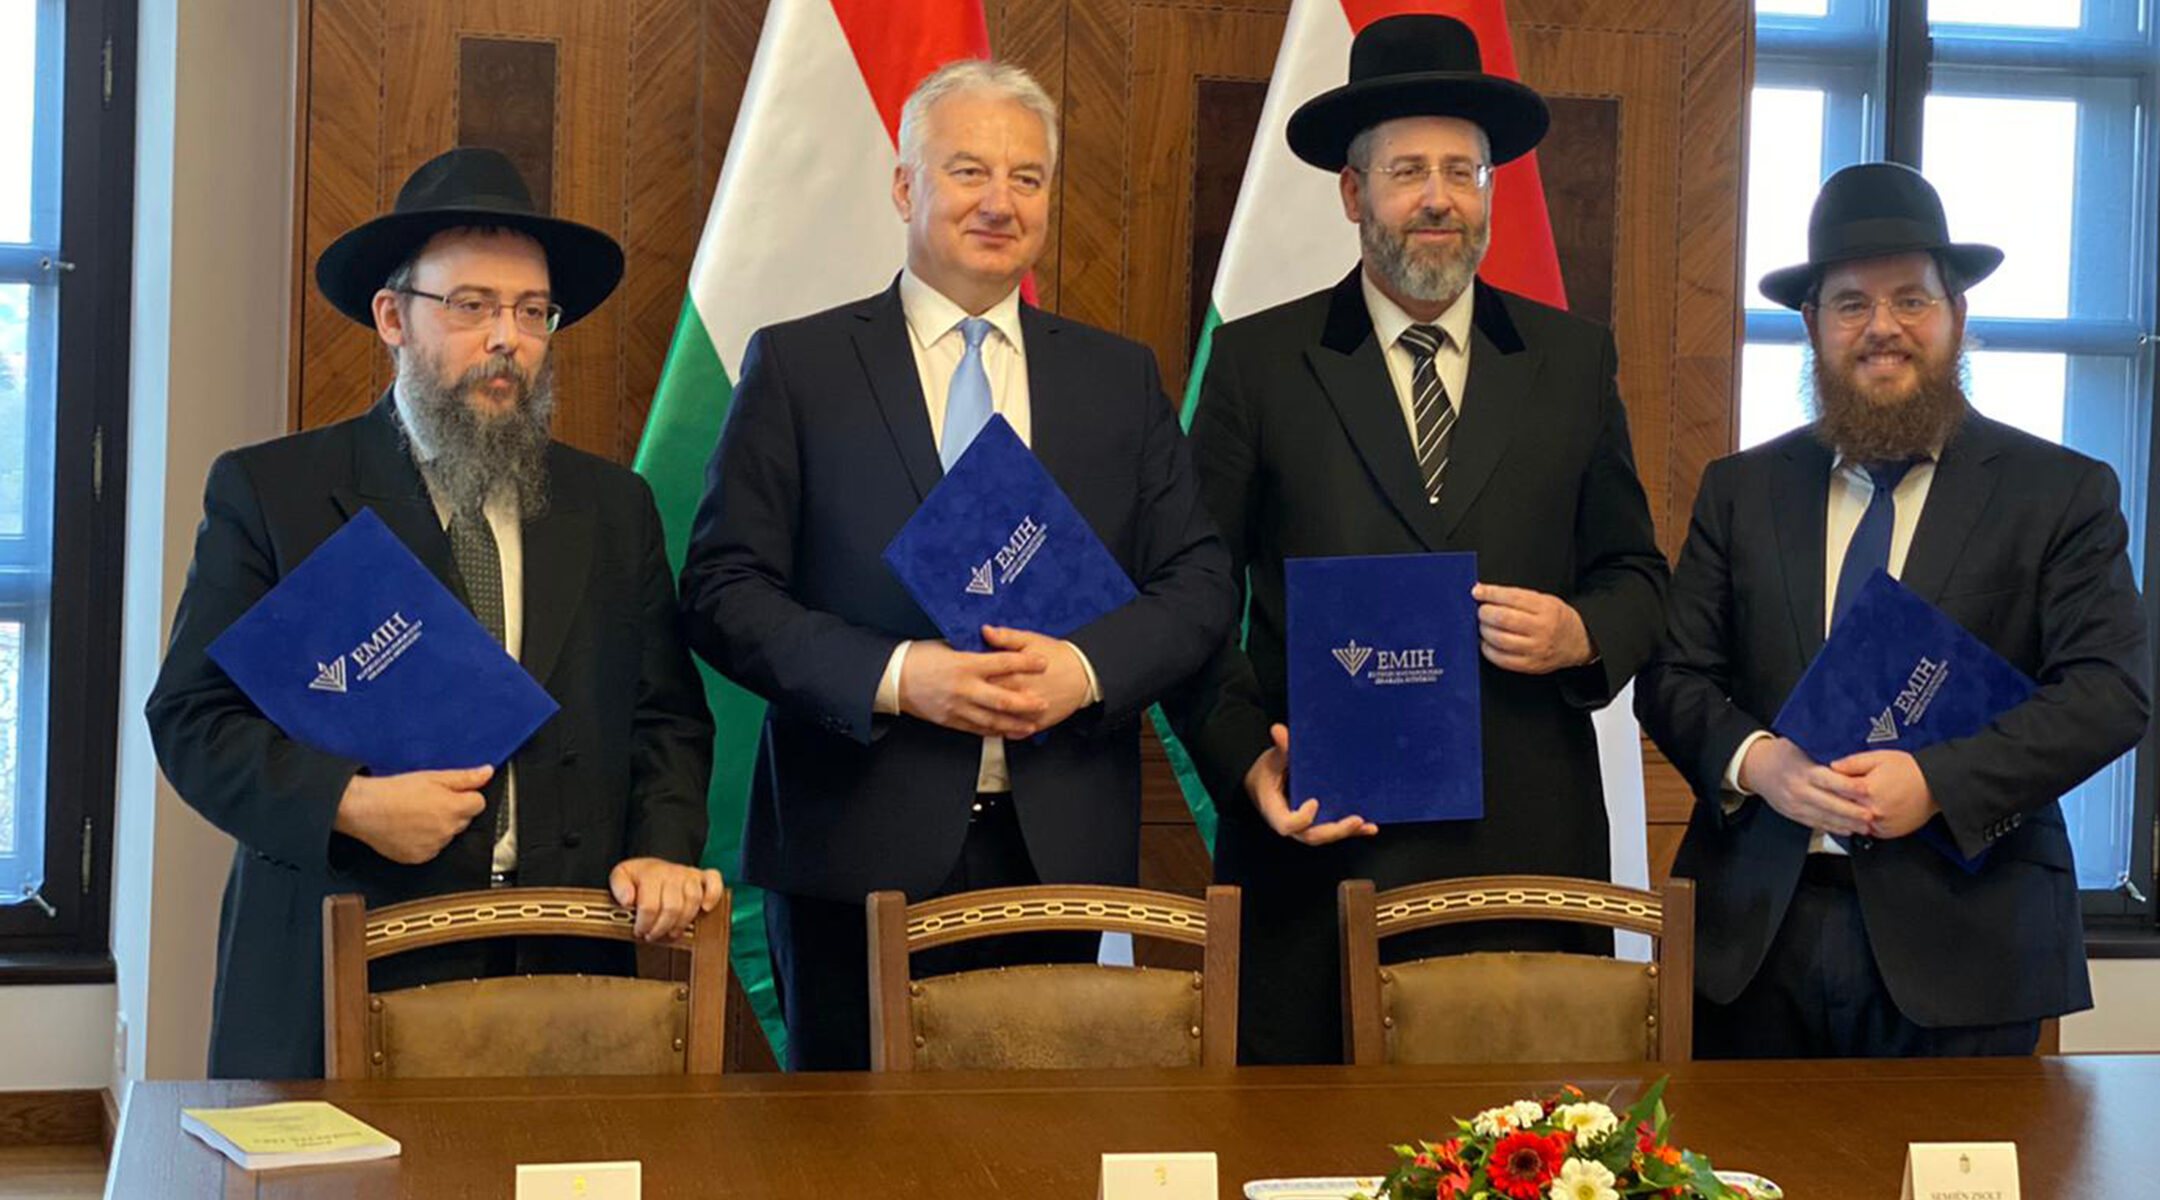 Hungarian Deputy Prime Minister Zsolt Semjén, second from left, meets with rabbis in Budapest, Hungary on Nov. 18, 2019. (EMIH)